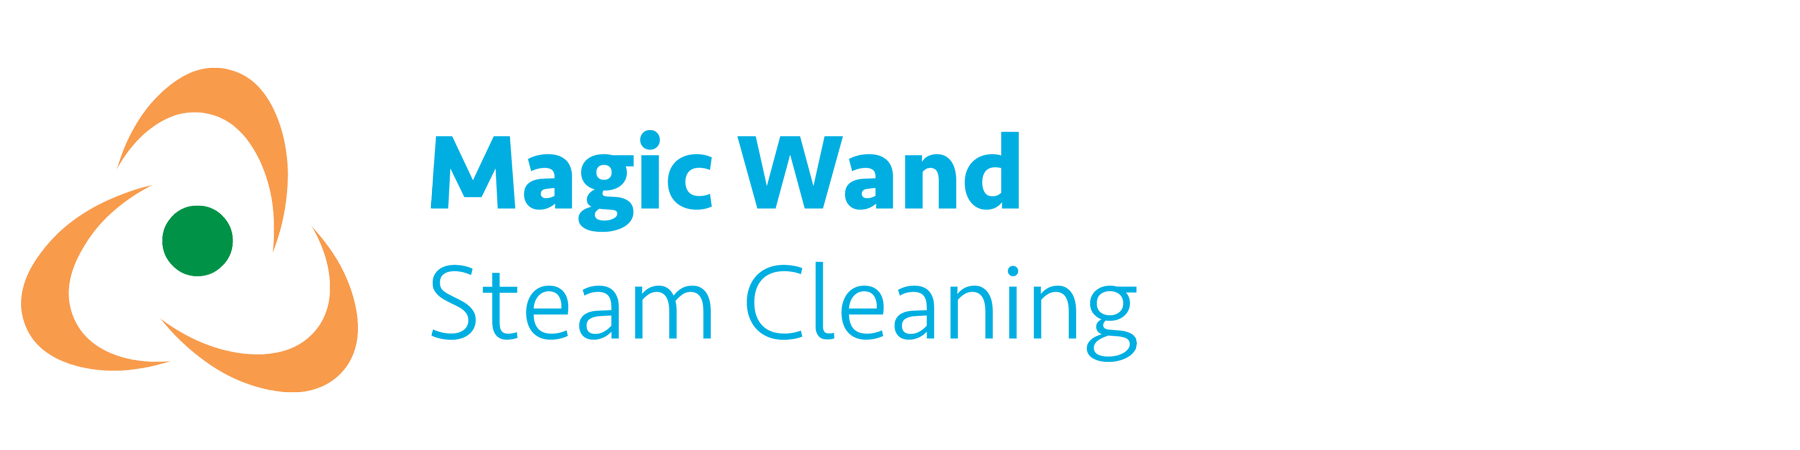 Magic Wand Carpet Cleaning Denver Metro